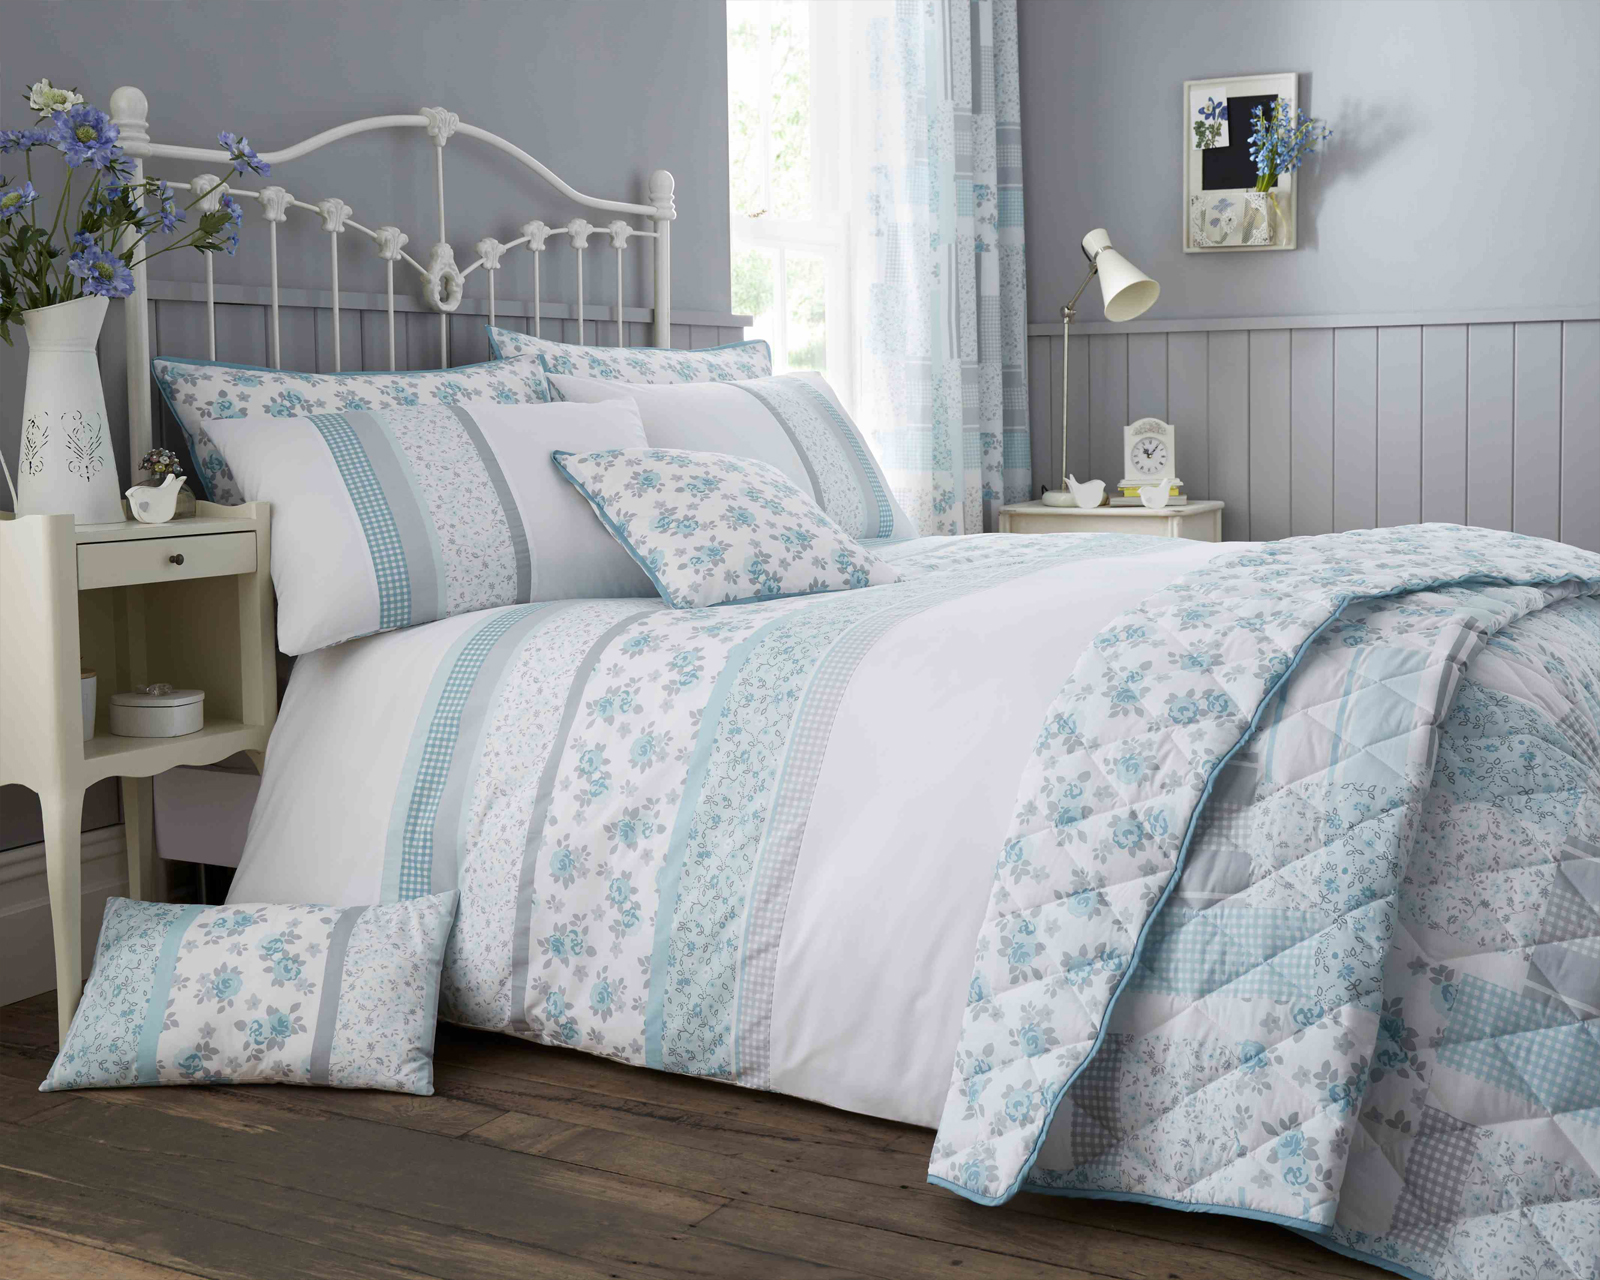 Duck Egg Blue Bedding And Matching Curtains Abahcailling Co